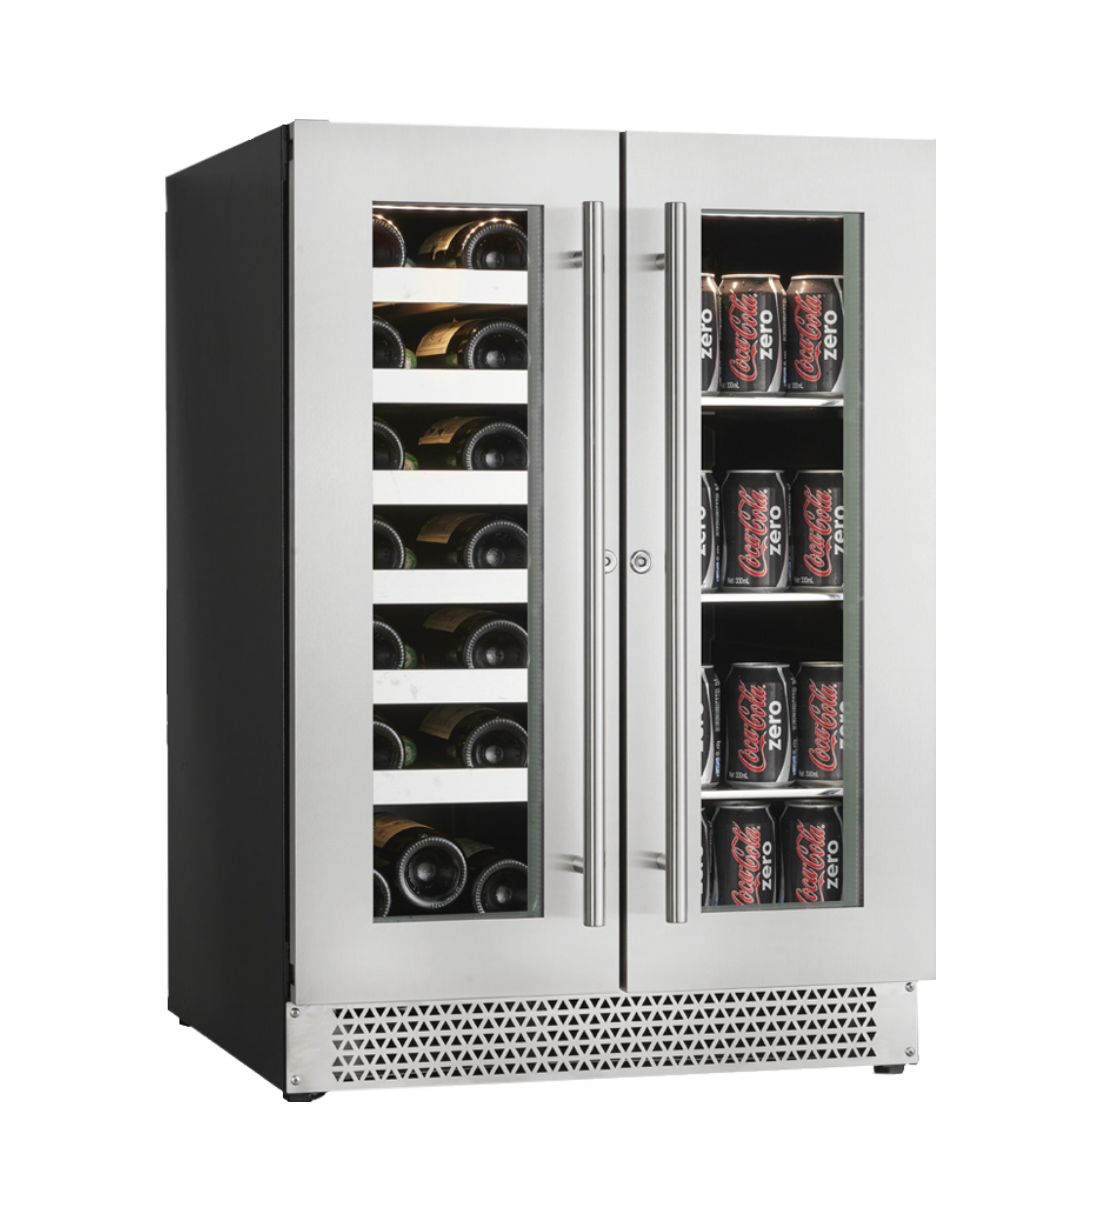 Cavavin Beverage center 24 StainlessSteel V-87WBVC